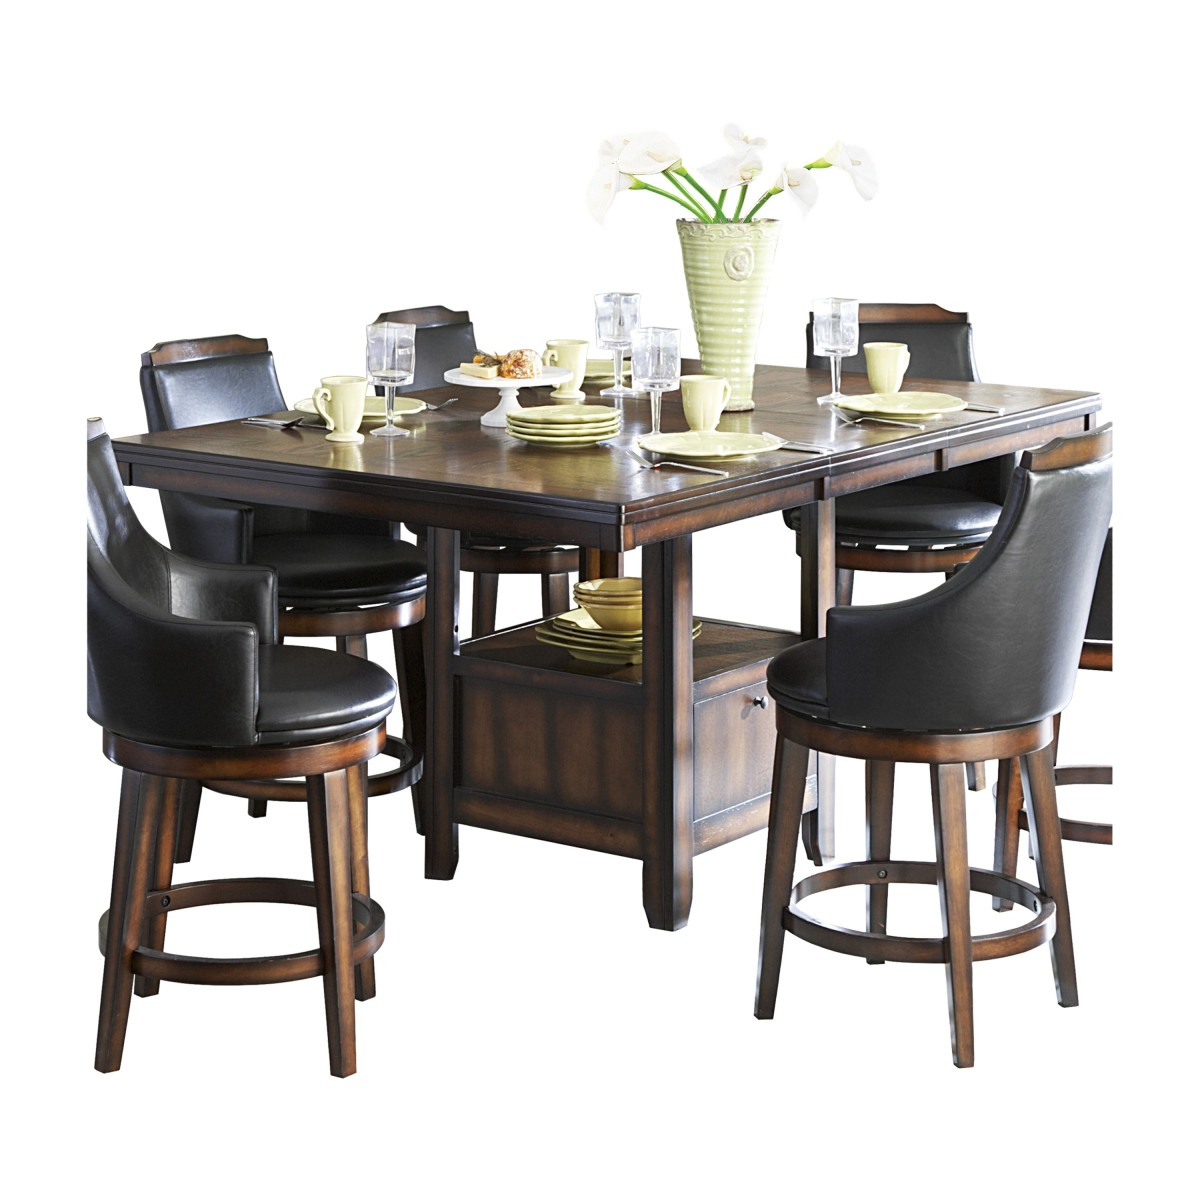 5447 36Xl* Counter Height Table With Storage Base Within Most Current Charterville Counter Height Pedestal Dining Tables (View 7 of 15)